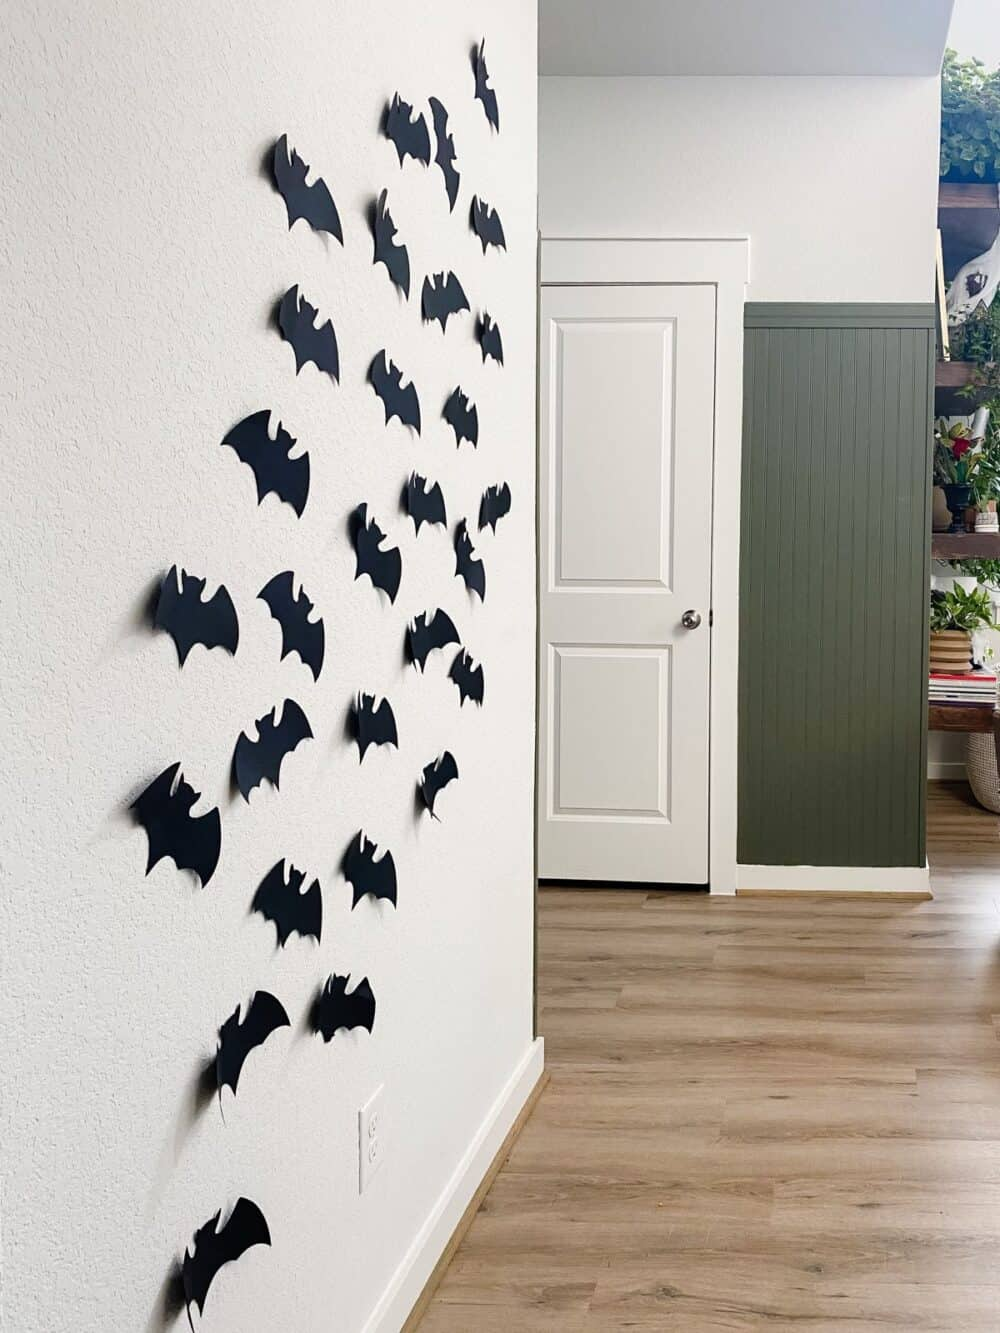 wall with paper bats taped to it for Halloween